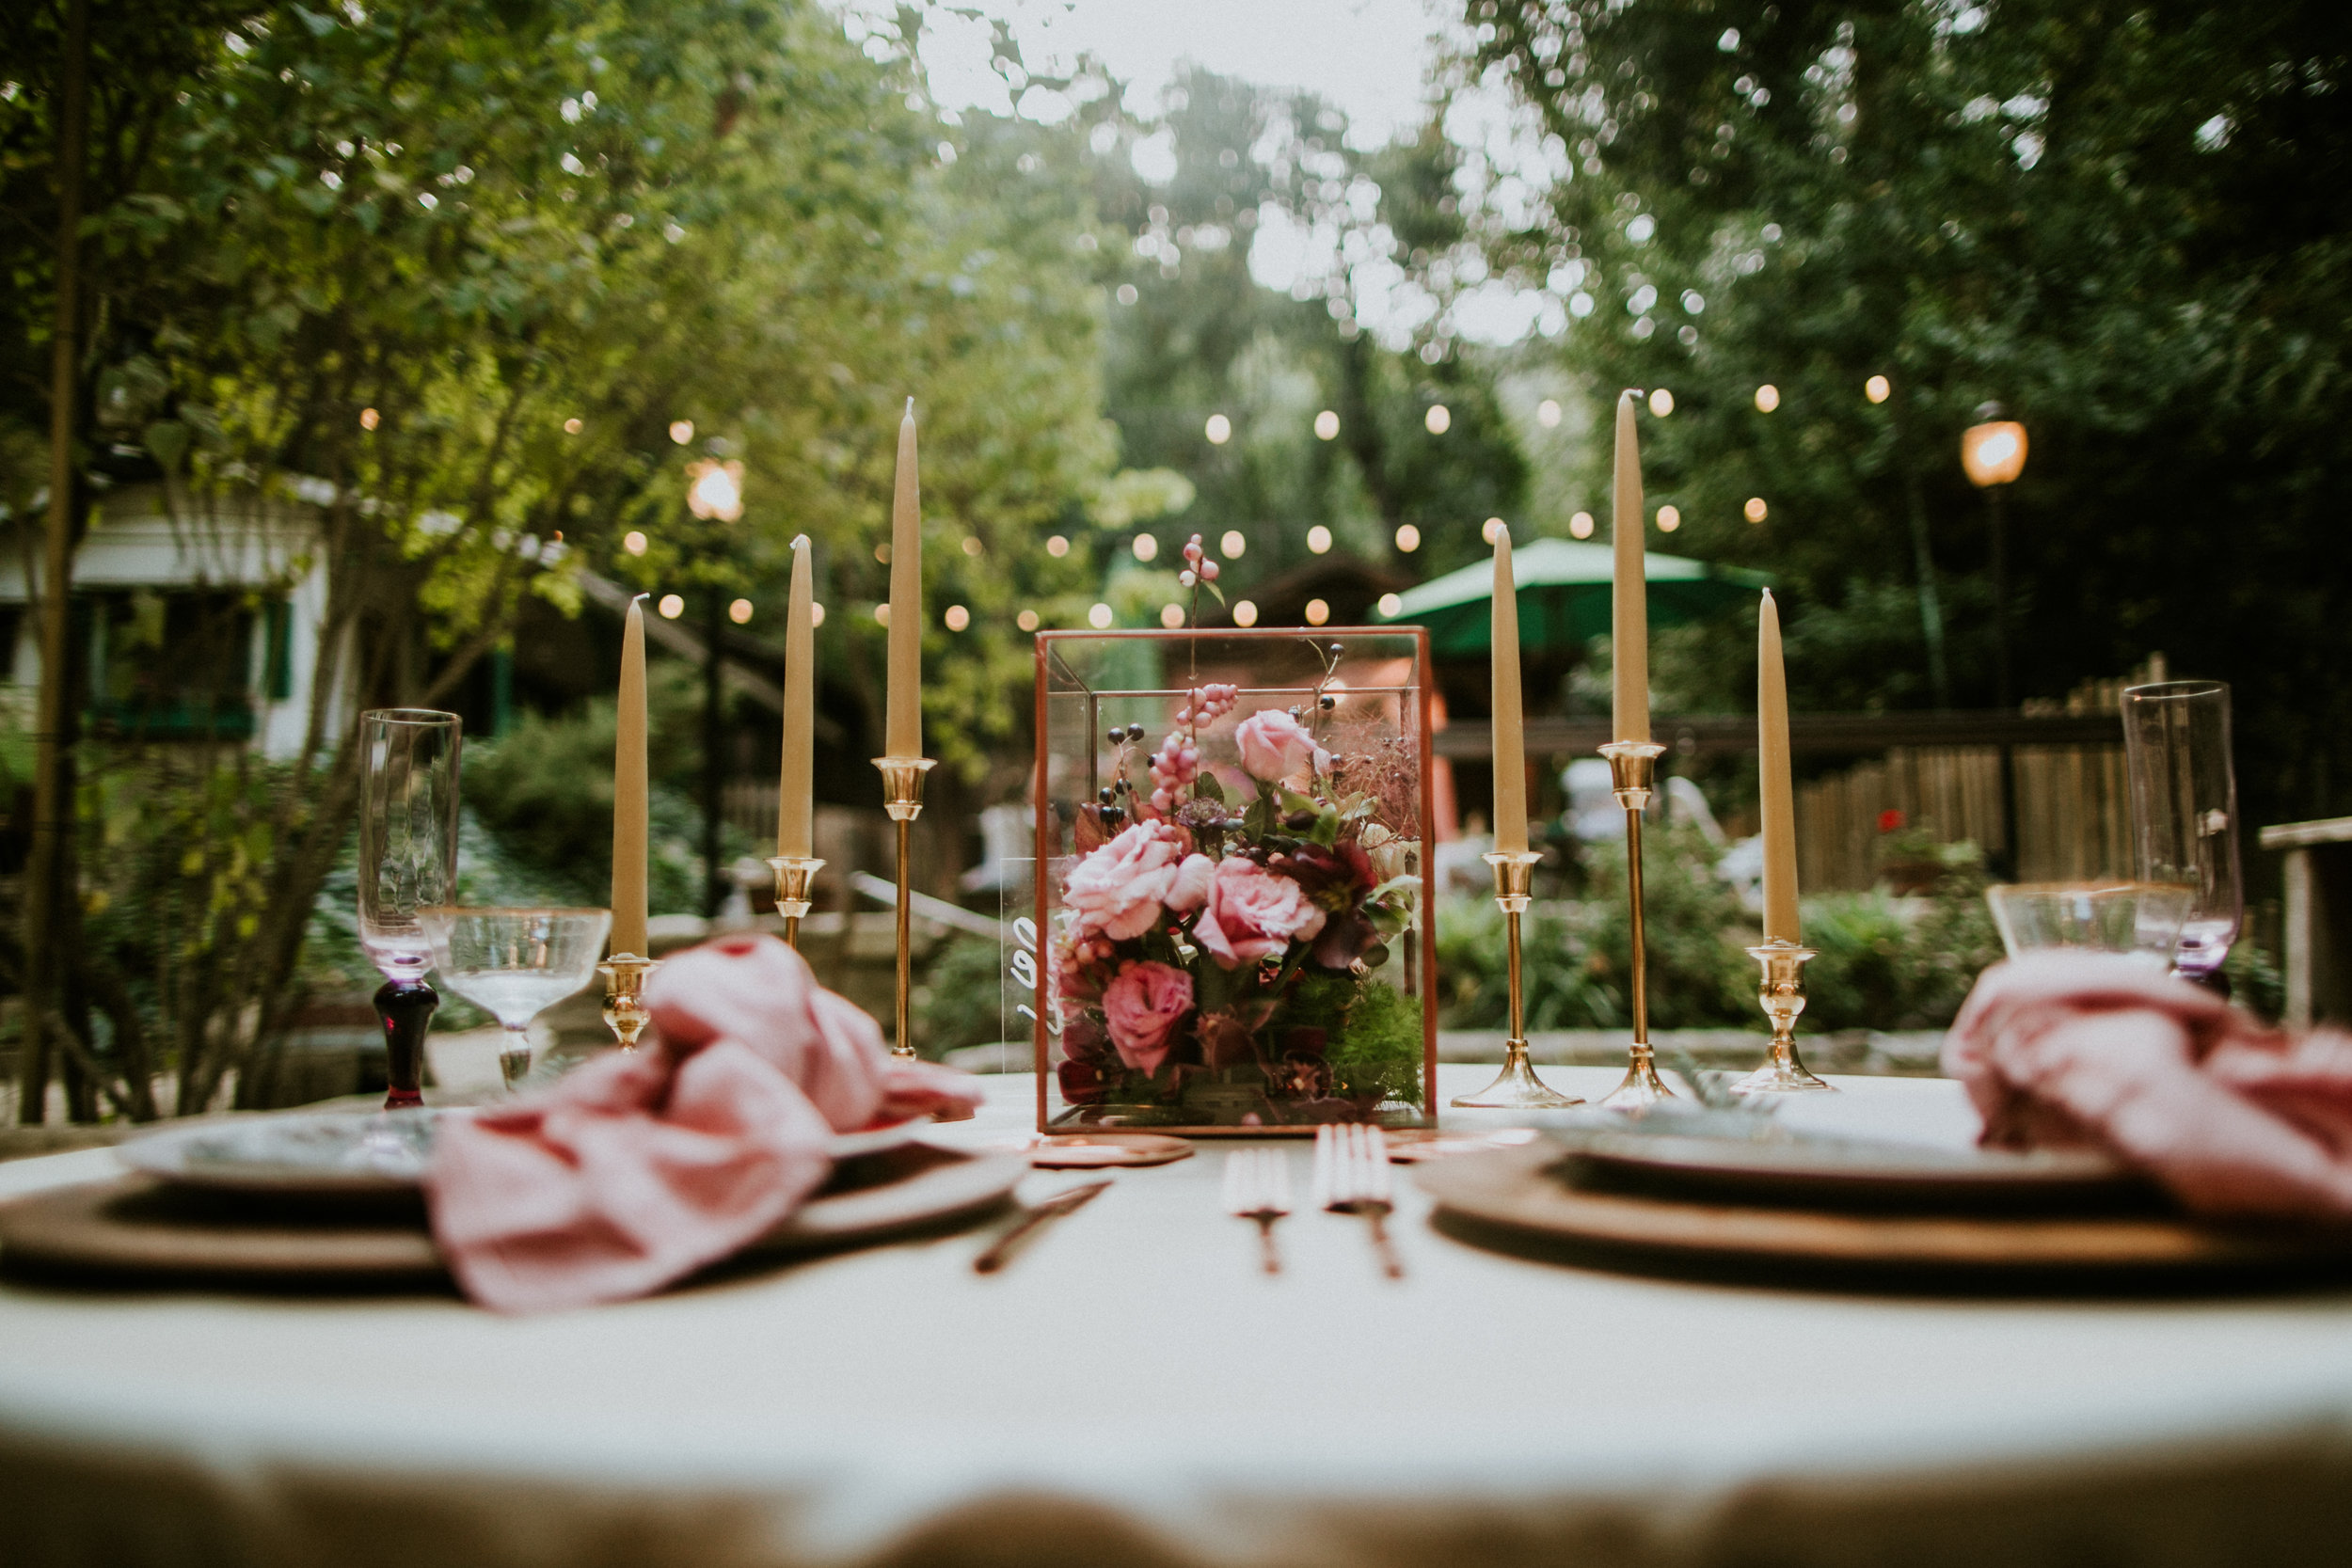 COLD SPRINGS TAVERN WEDDING.jpg